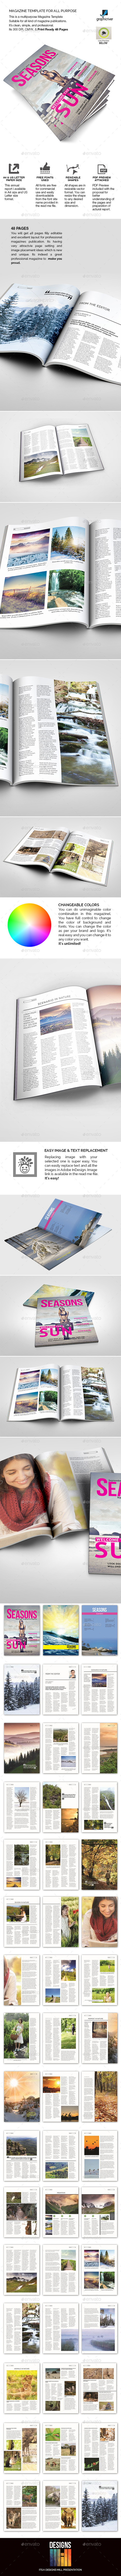 GraphicRiver The Great Magazine Template 8929462